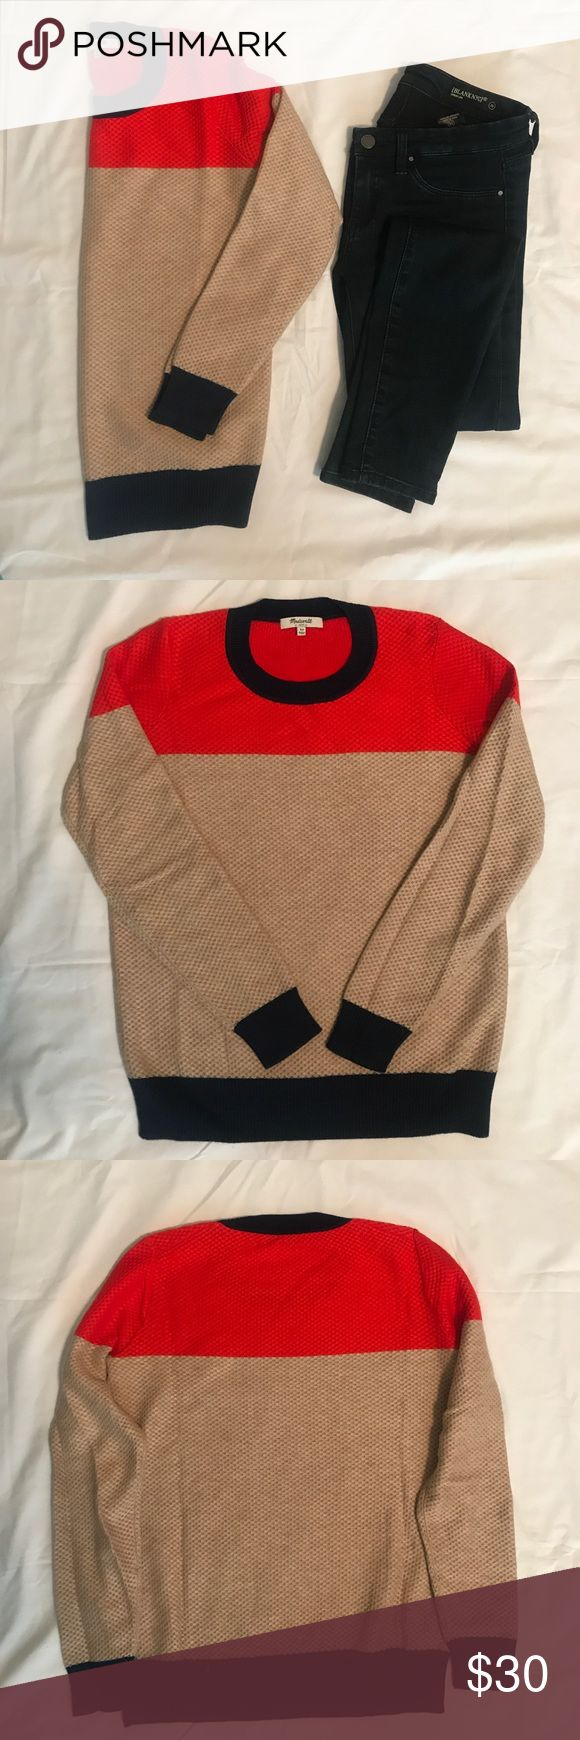 """Madewell color-weave sweater Madewell waffle knit color-weave sweater; navy, orange, and beige. This looks sweater is 100% cotton and is very soft. It is a perfect addition to your closet as the temperatures begin to fall. Will look great with jeans and boots or flats. Style under a vest or wear it by itself. Bust measures 16"""" across from armpit to armpit when laid on a flat surface. Length measures about 22.5"""" from to if shoulder to hem. Very good condition, like new. Size XS. Madewell…"""